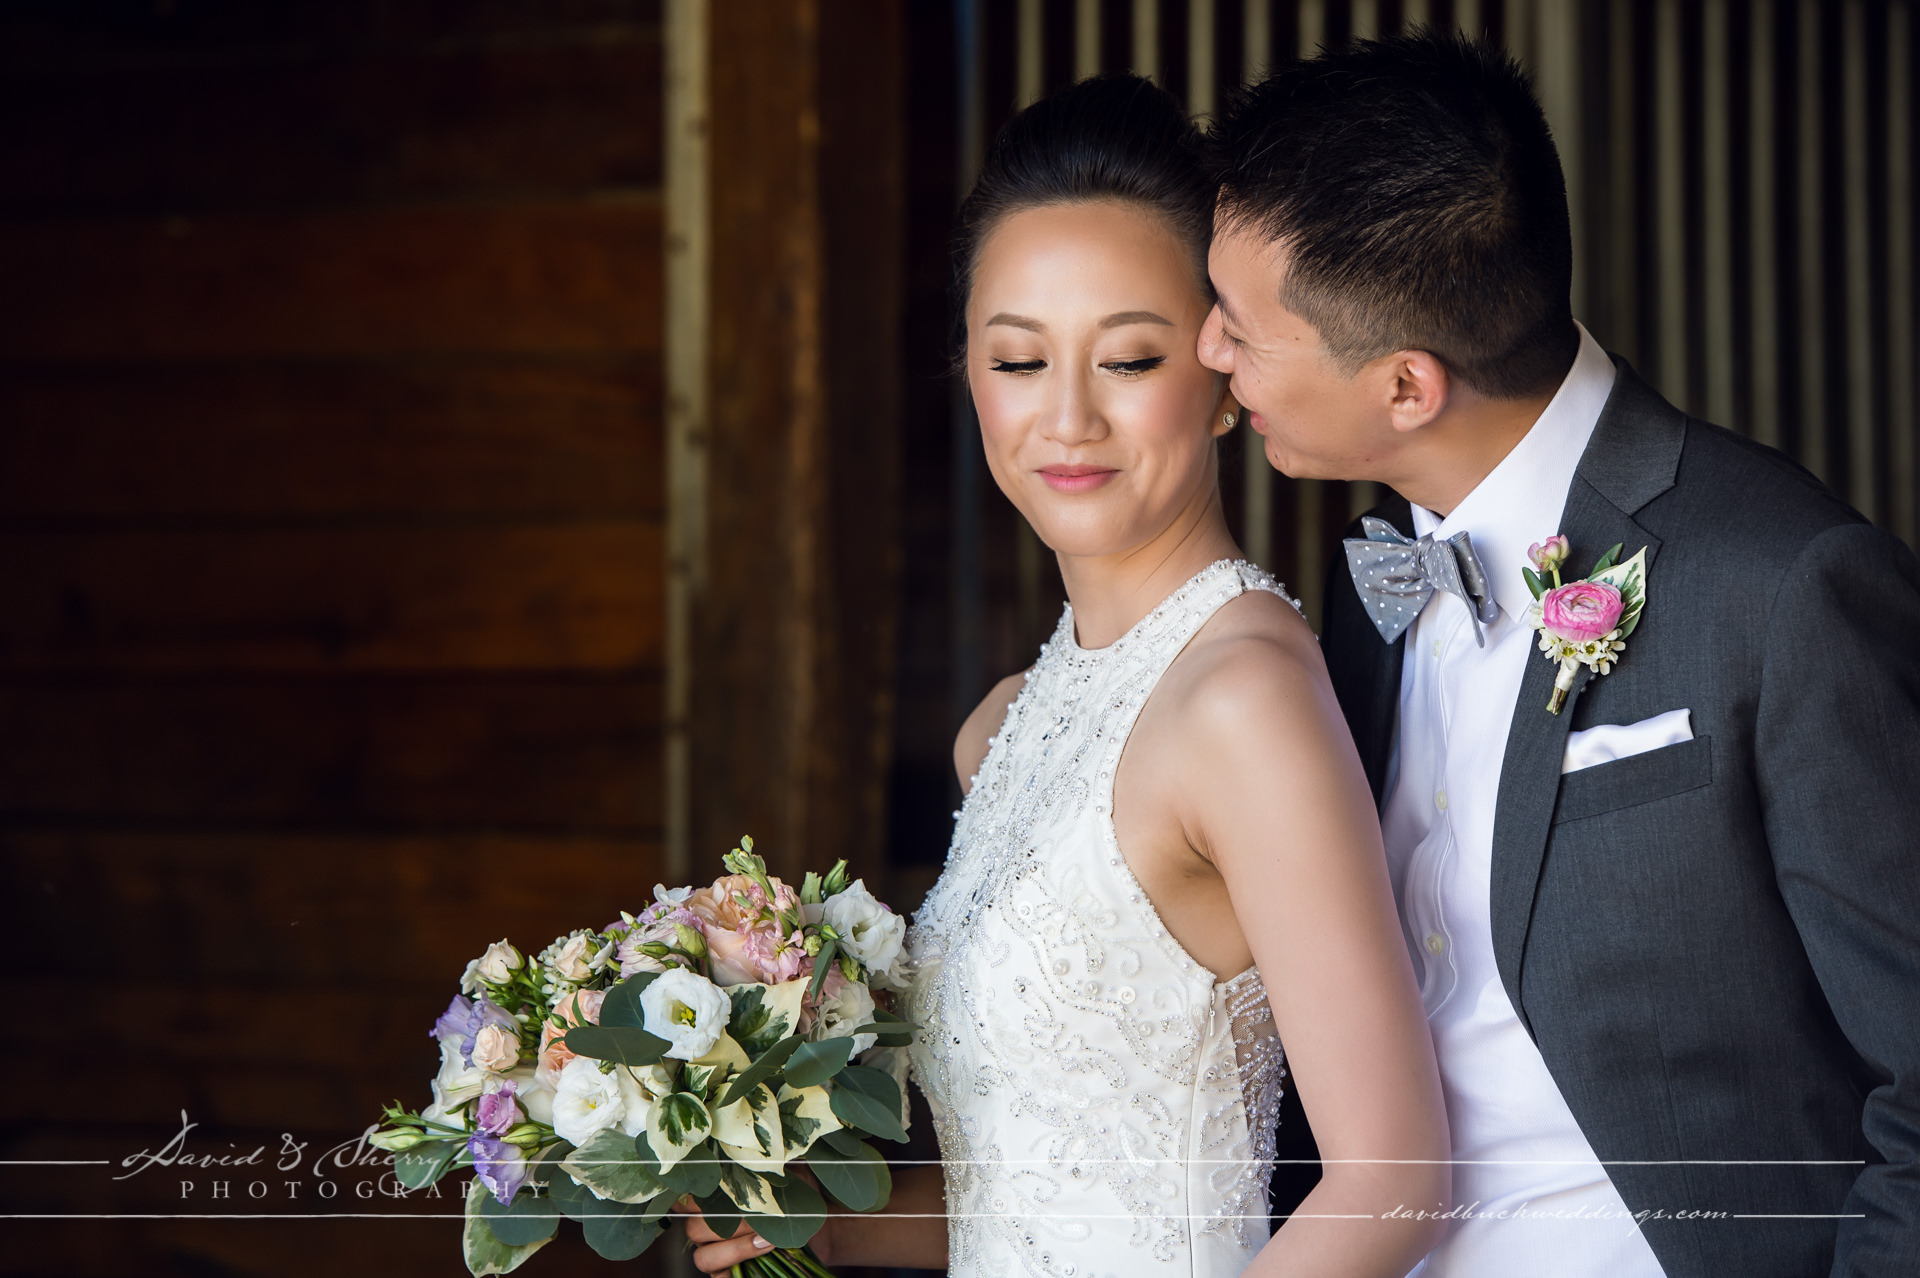 waterstone-estate-wedding-david-sherry-photography-simon-crystal-011